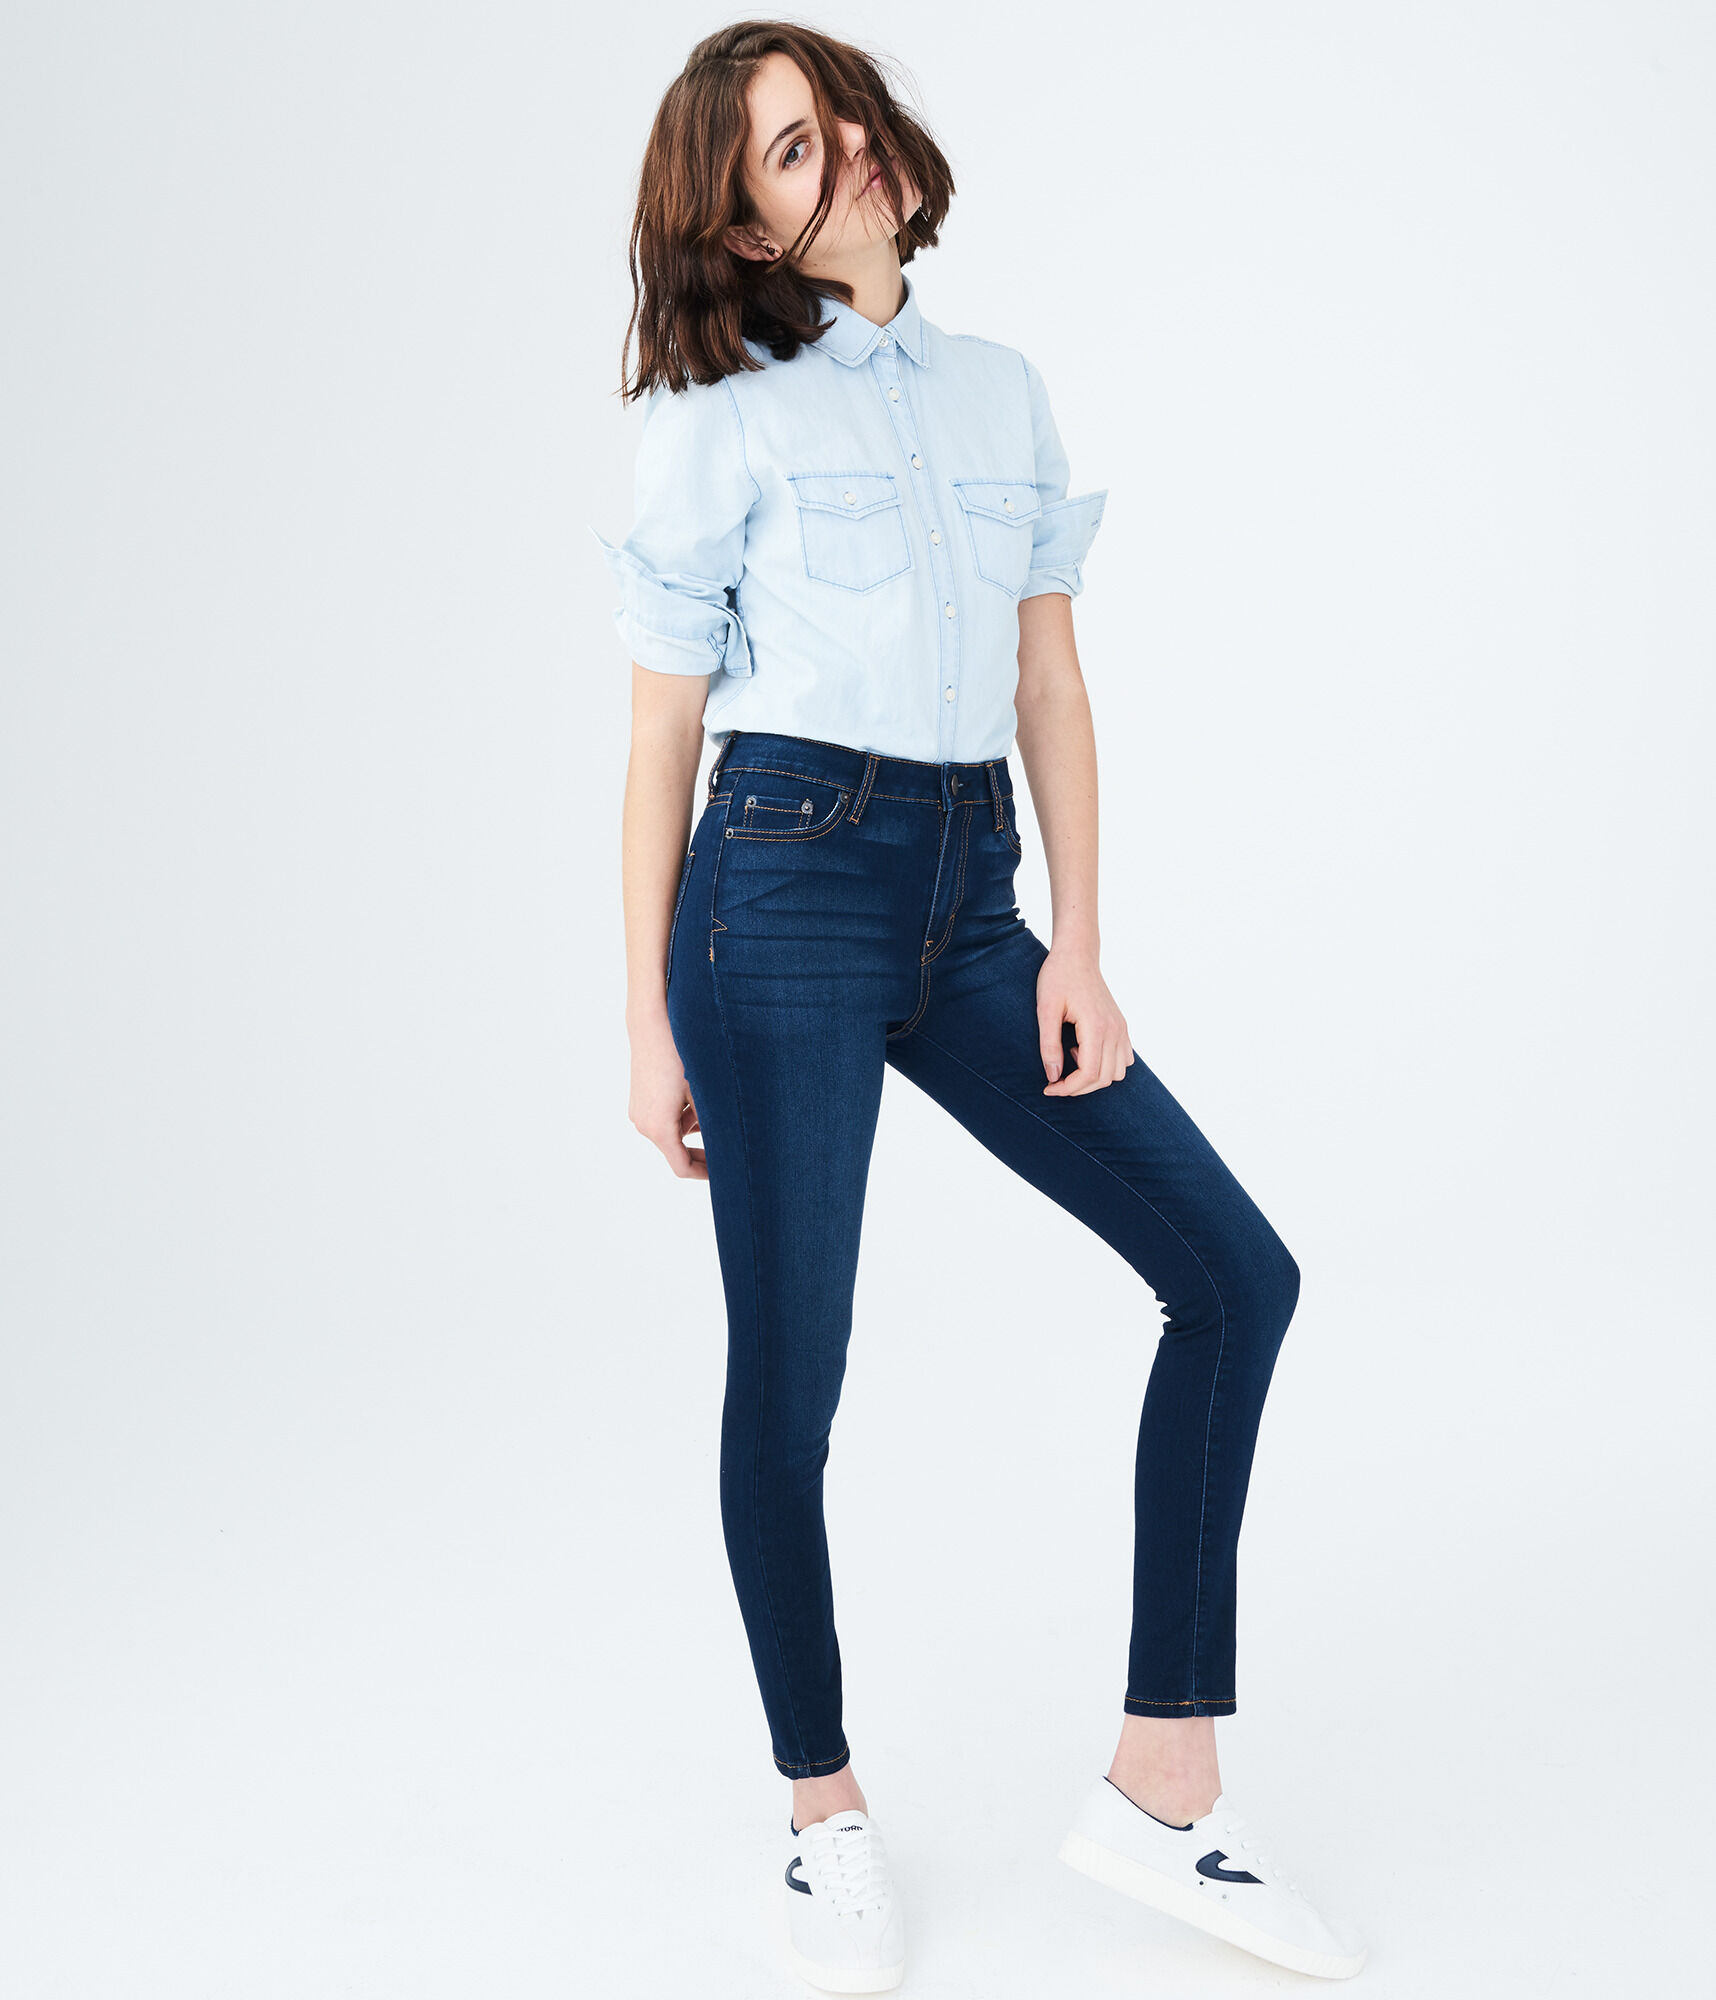 84aad2a37f7 Seriously Stretchy High-Waisted Jegging ...